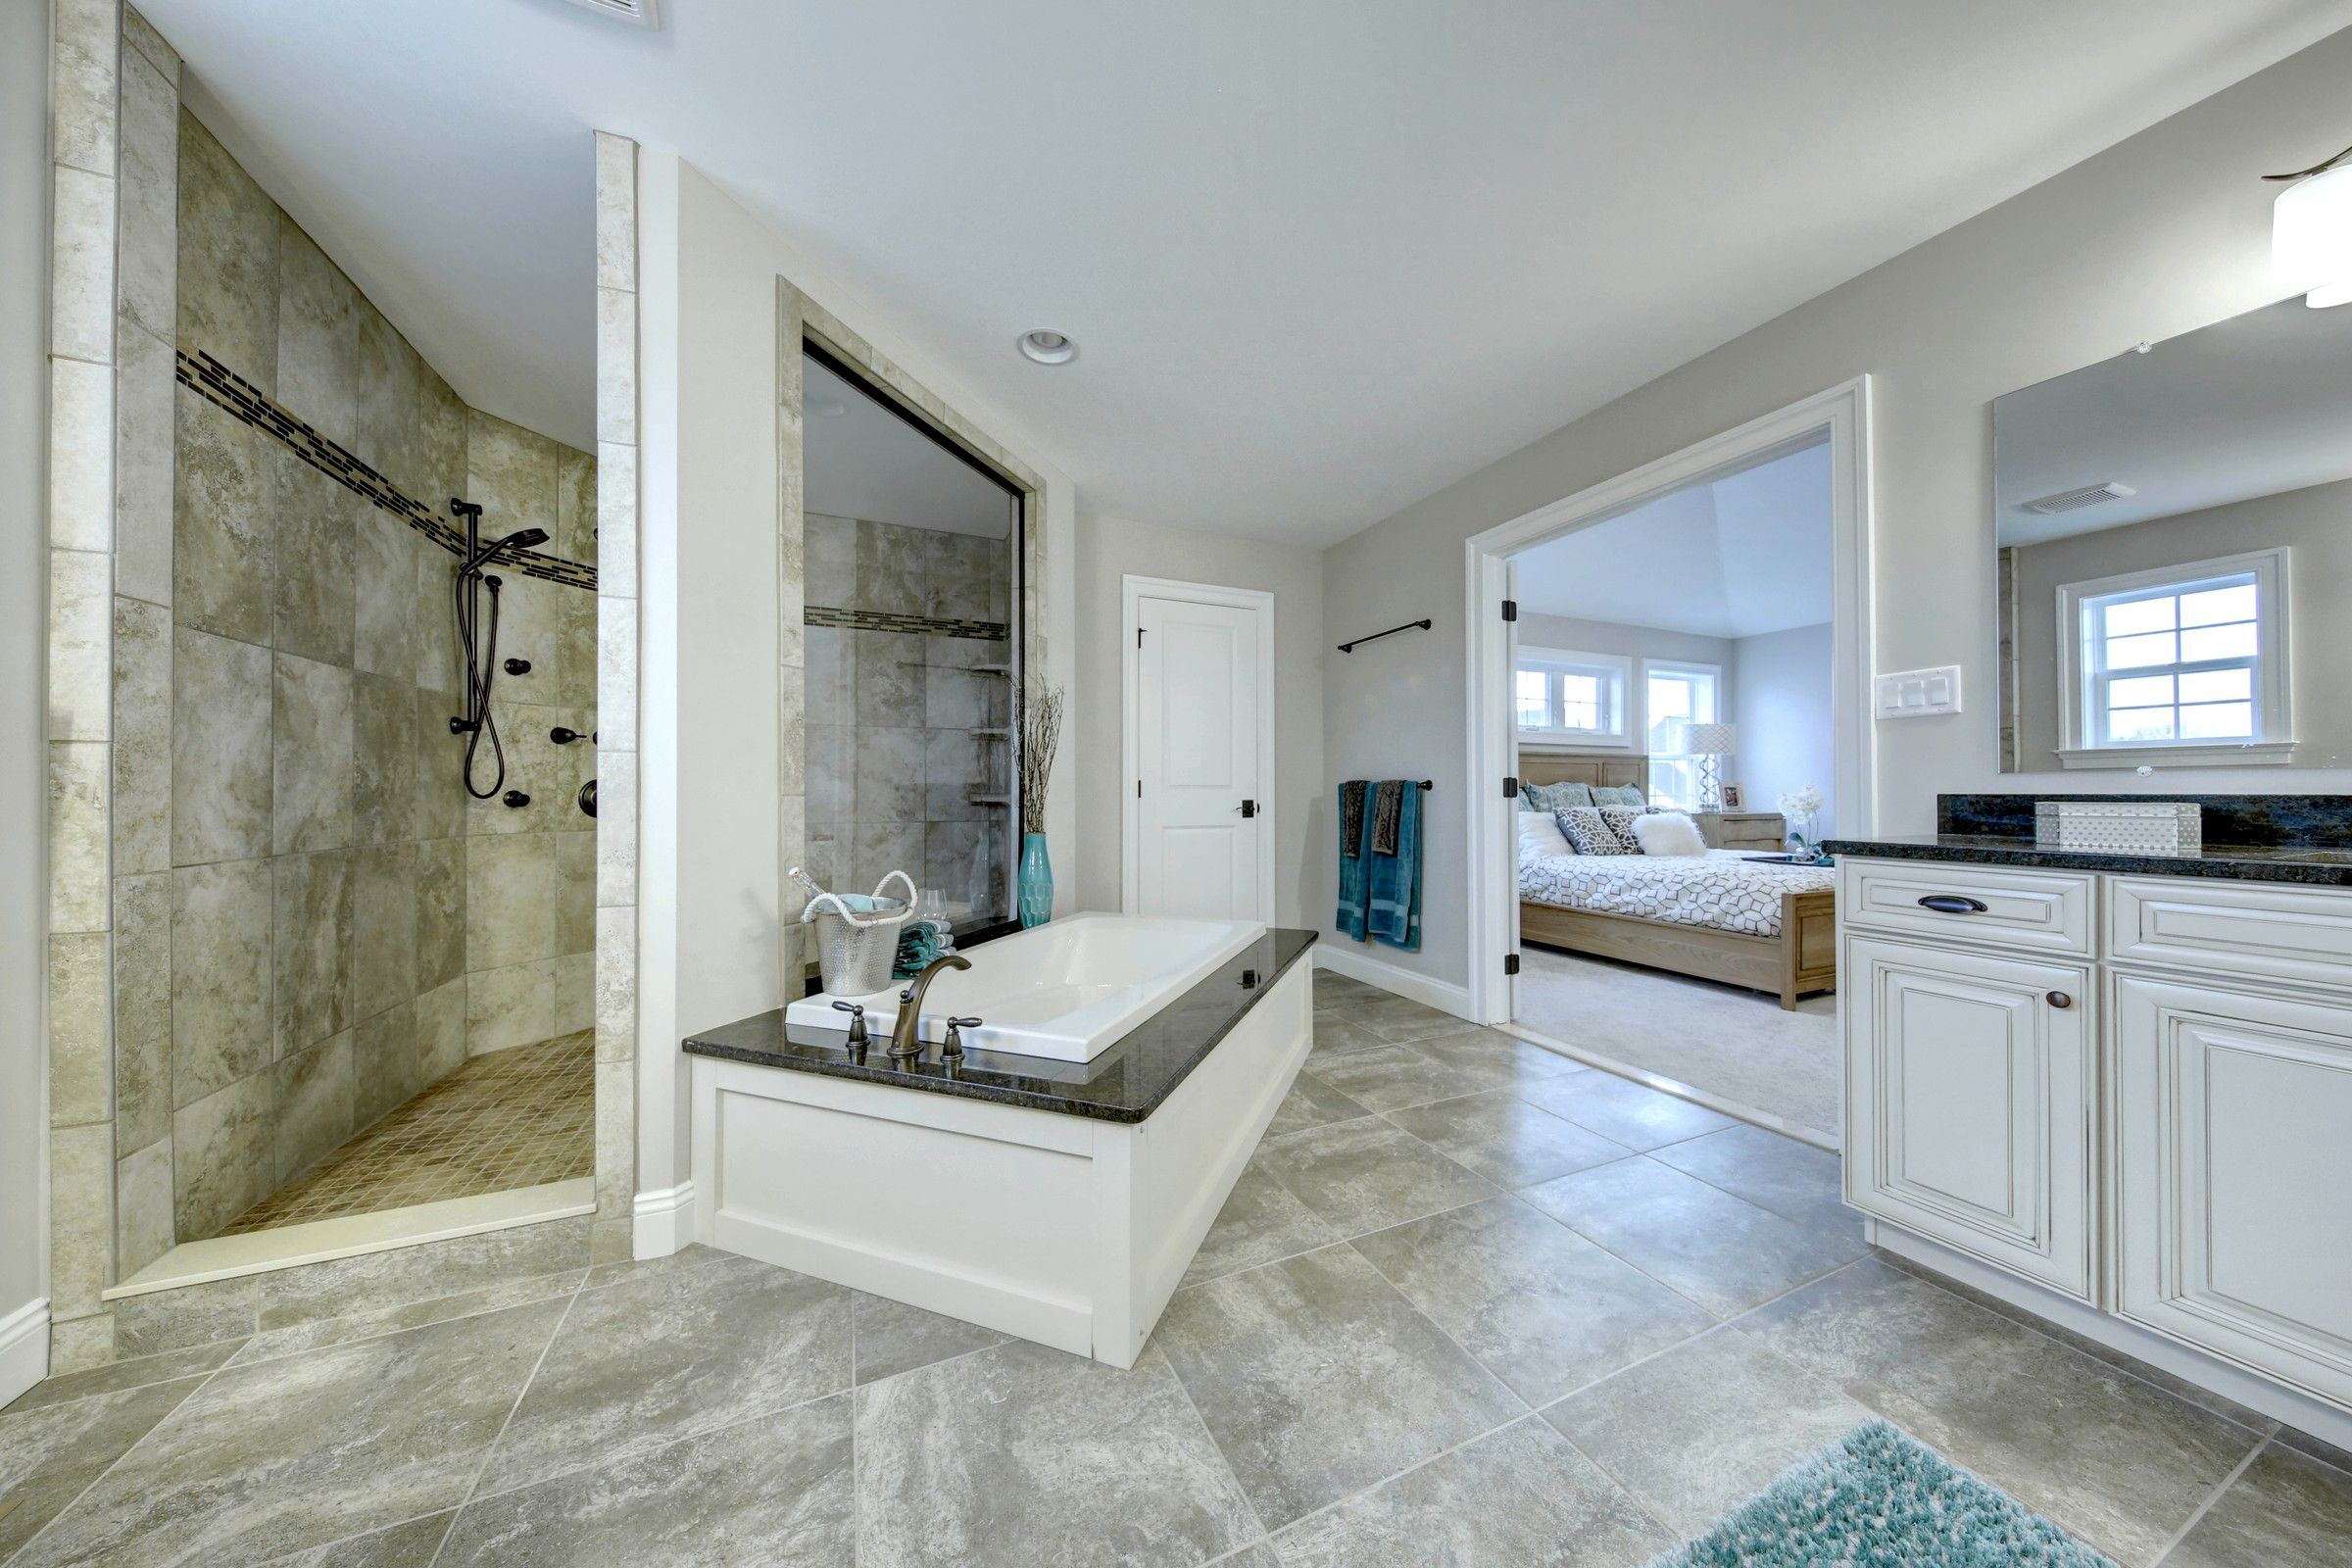 Bathroom featured in the Ethan Heritage By Keystone Custom Homes in York, PA